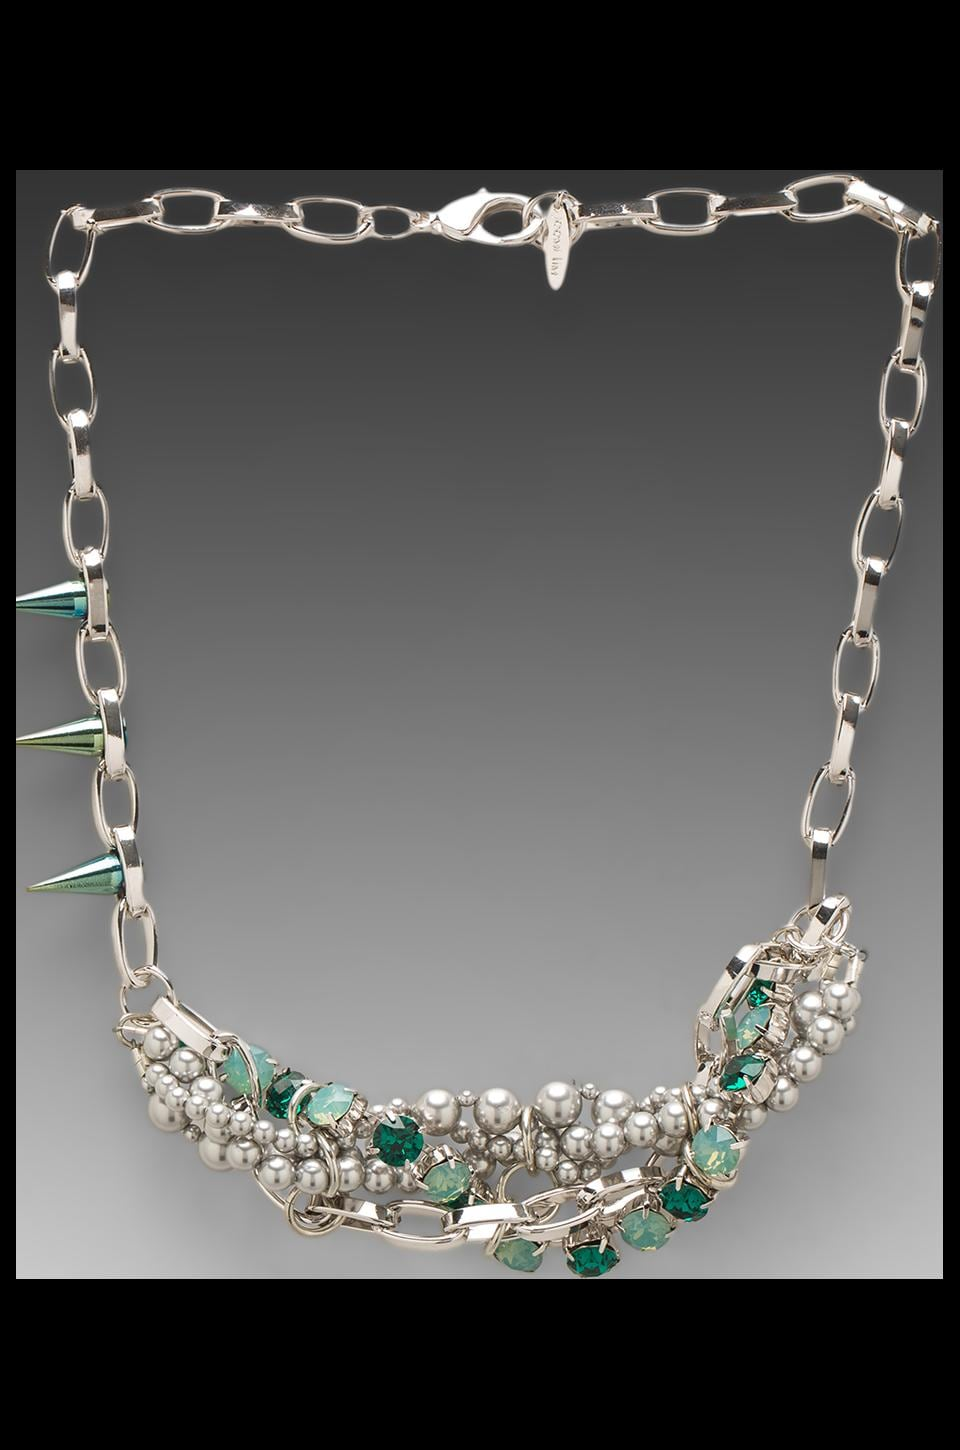 JOOMI LIM Crystal & Pearl Woven Necklace w/ Spikes in Green/Grey Pearls